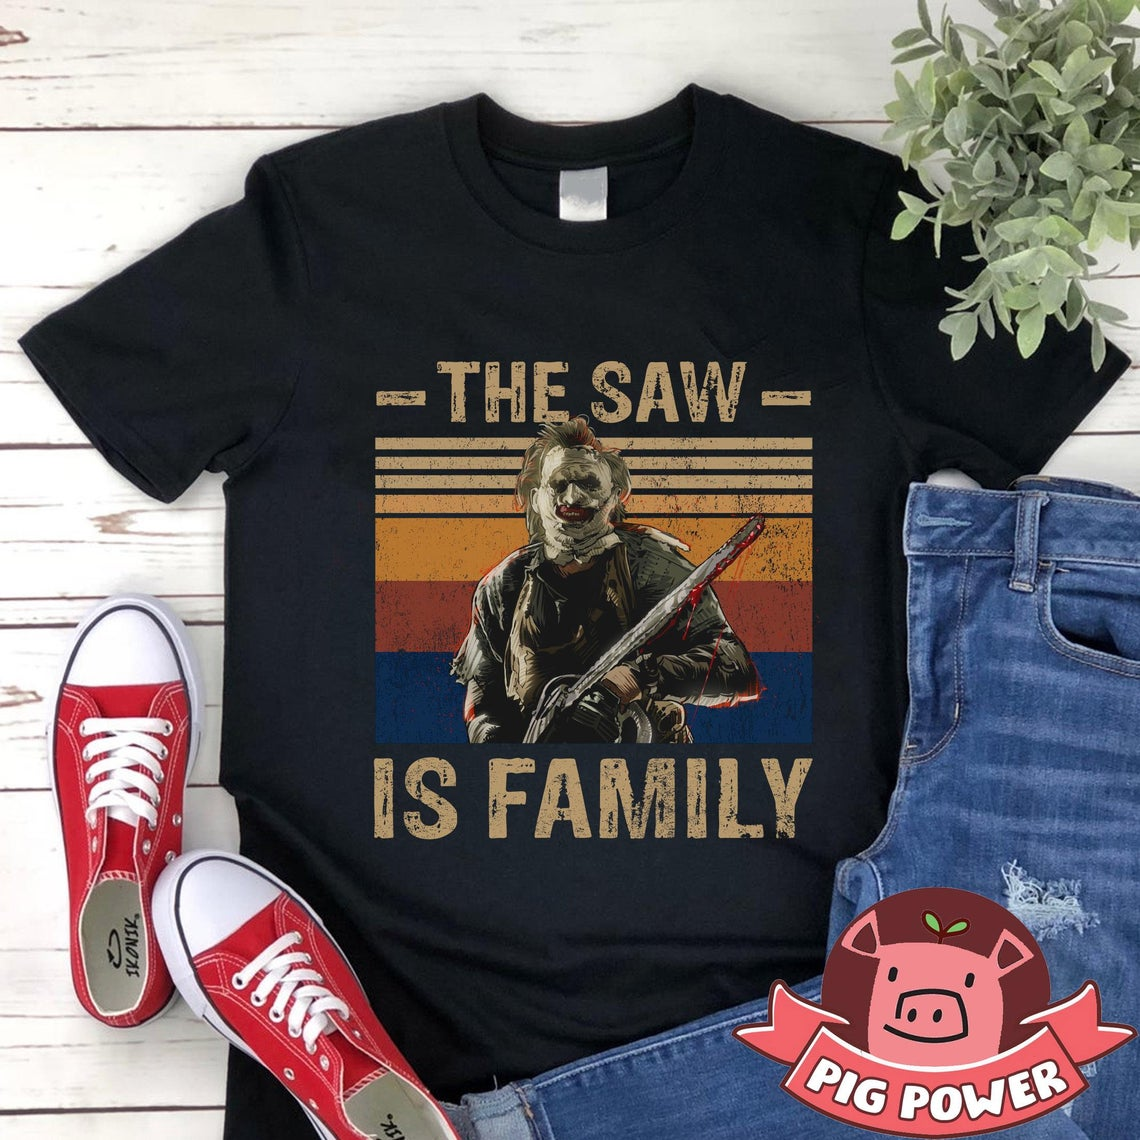 The Saw Is Family Shirt Vintage